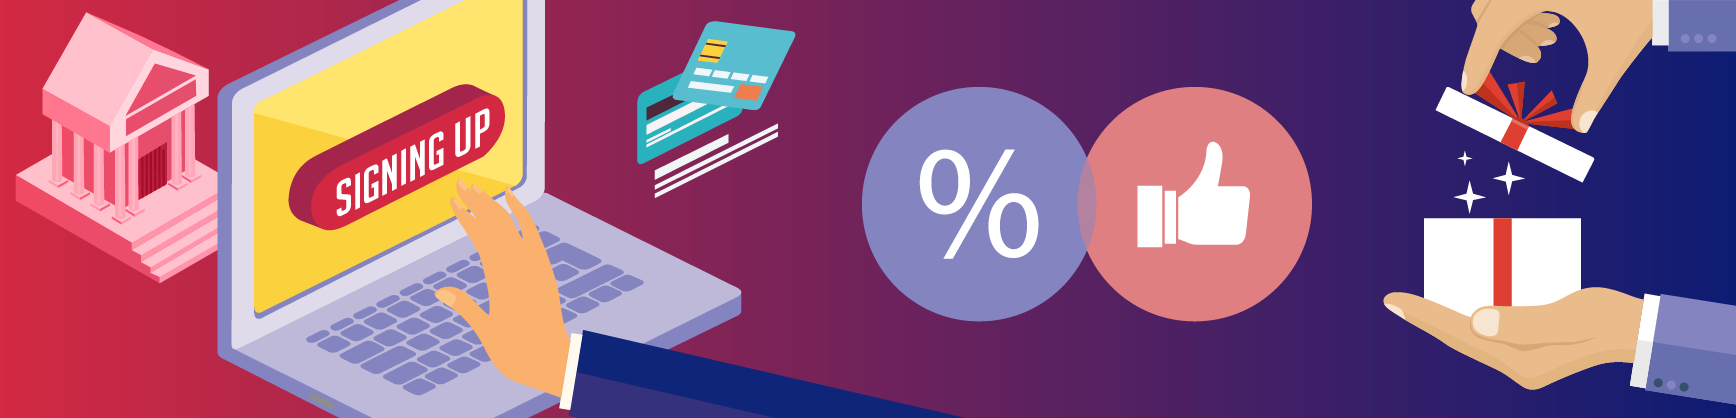 7. U.S. Bank discounts, perks, and benefits for signing up